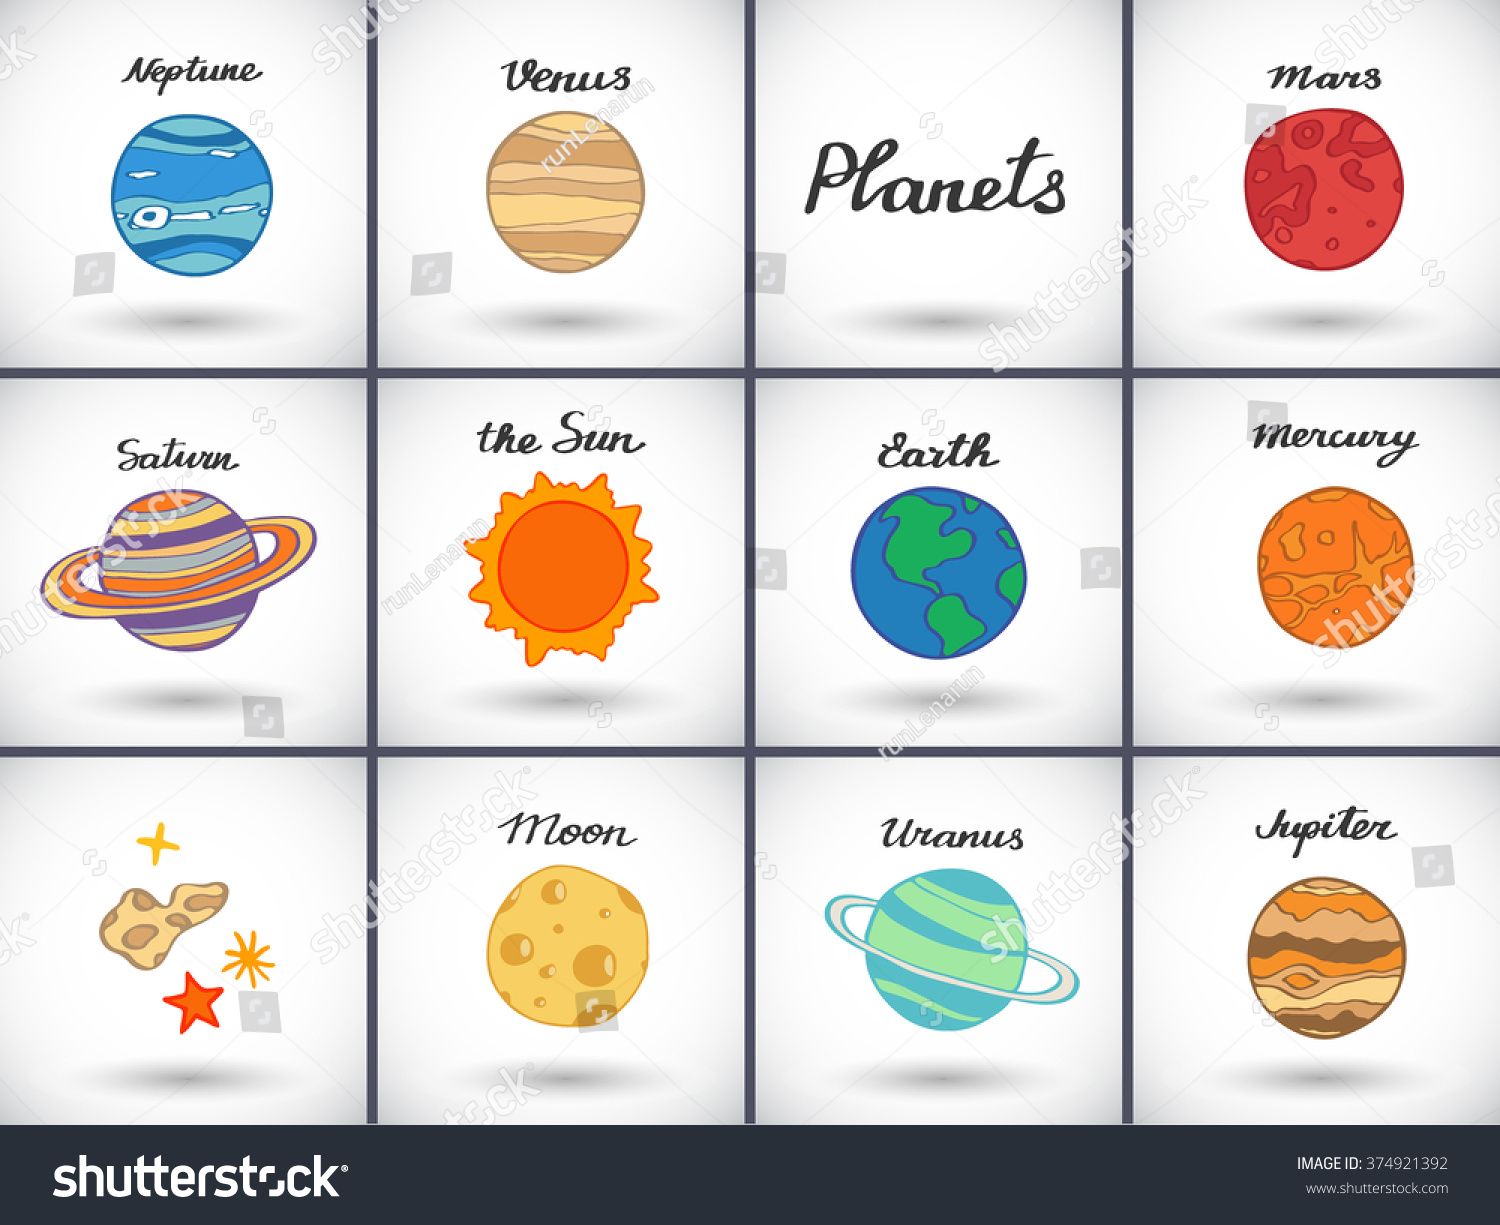 drawing of planets in solar system - photo #18